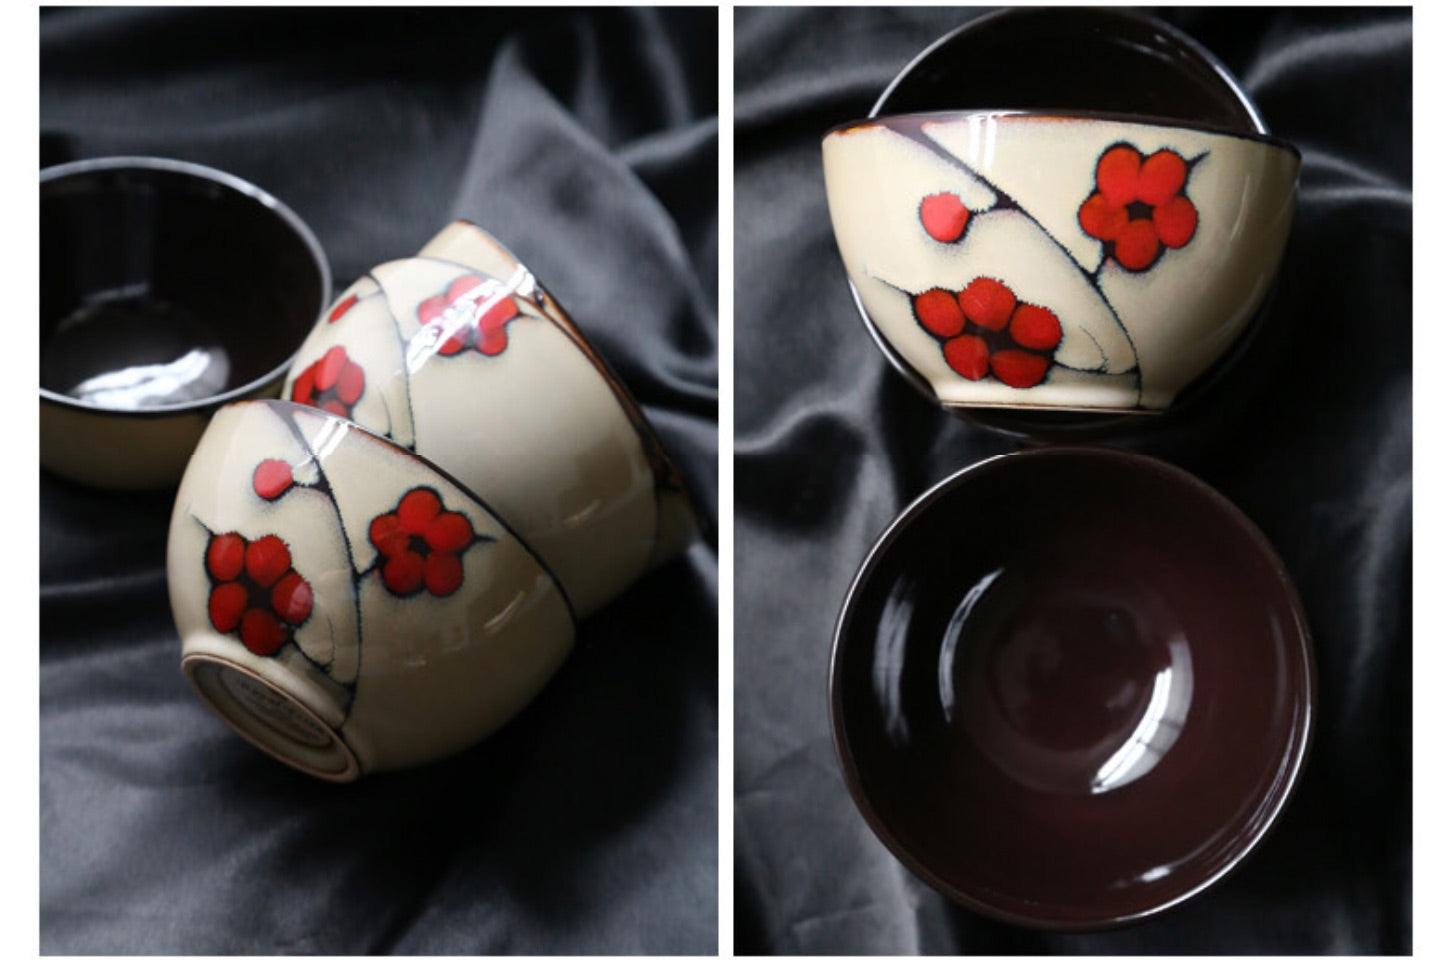 Japanese Red Plum Porcelain Cups Tableware Japan On-Glaze Ceramic Dinnerware Dinner Sets JPN Style D